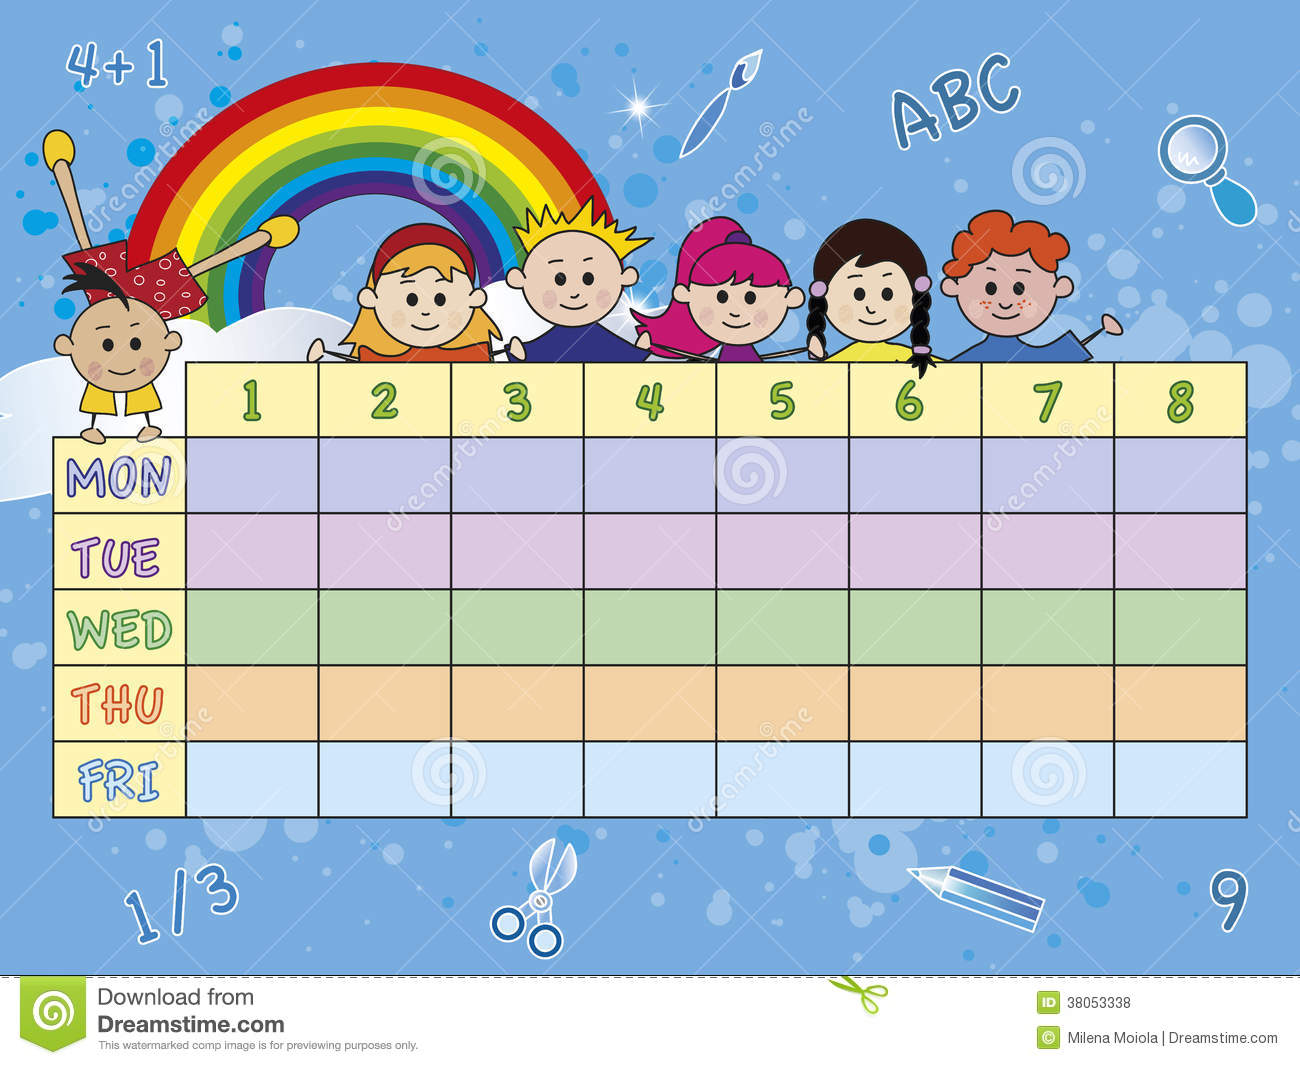 School Timetable Royalty Free Photos Image 38053338 – School Time Table Designs